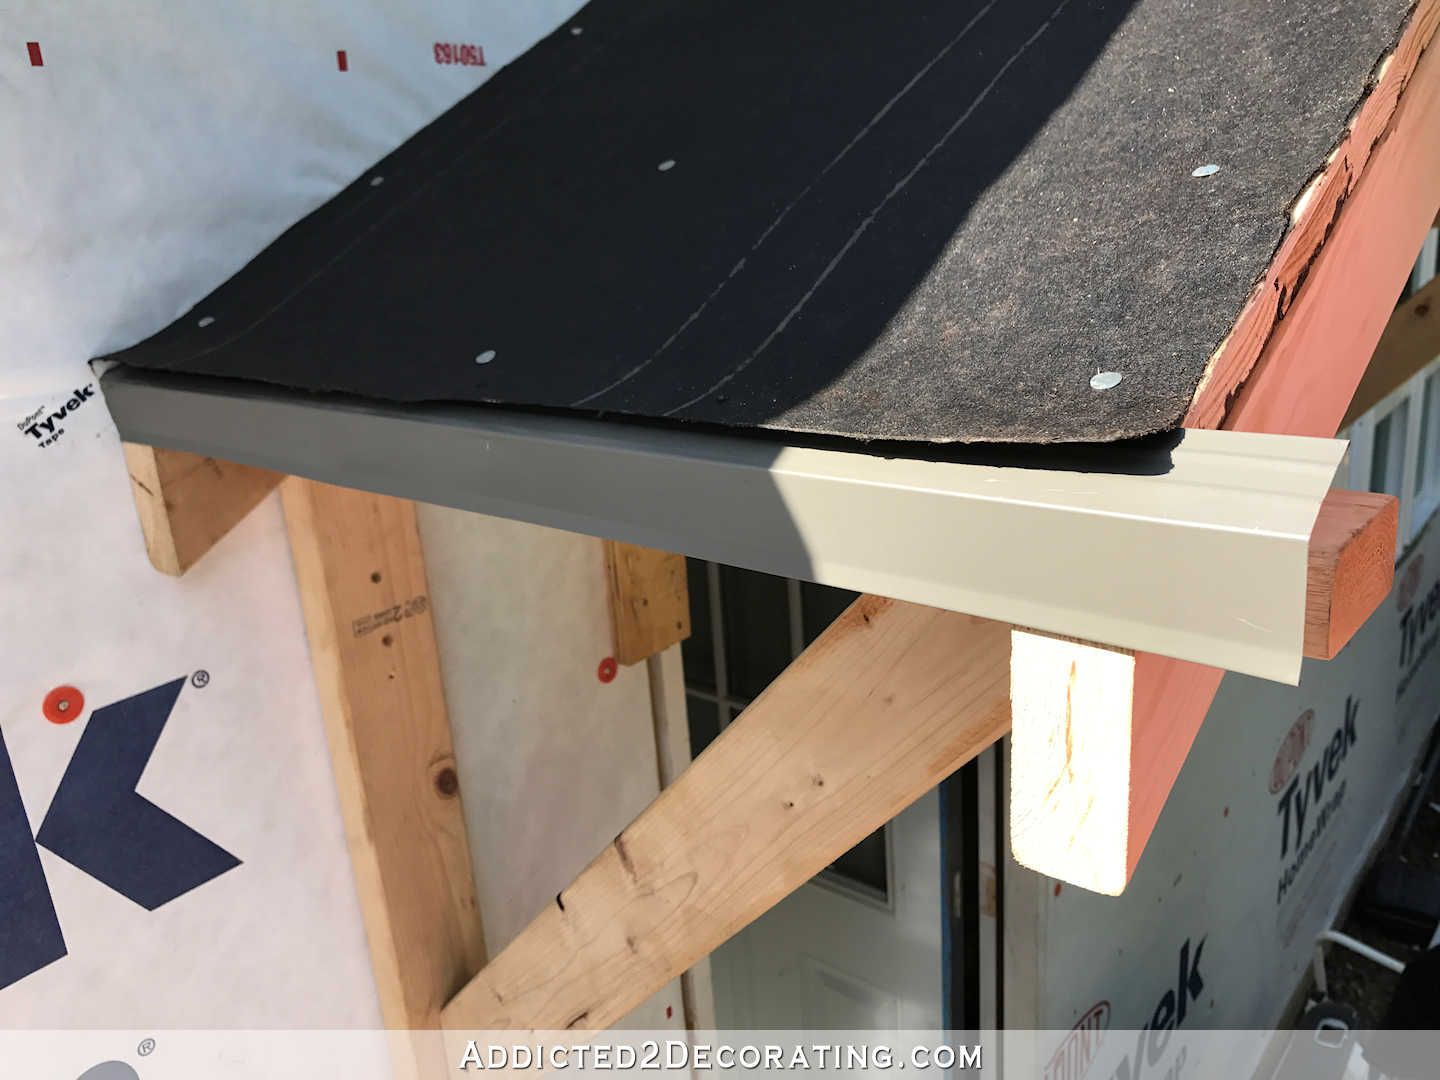 Diy Portico Part 2 Finishing The Ceiling The Roof Addicted 2 Decorating Diy Roofing Portico Roofing Diy